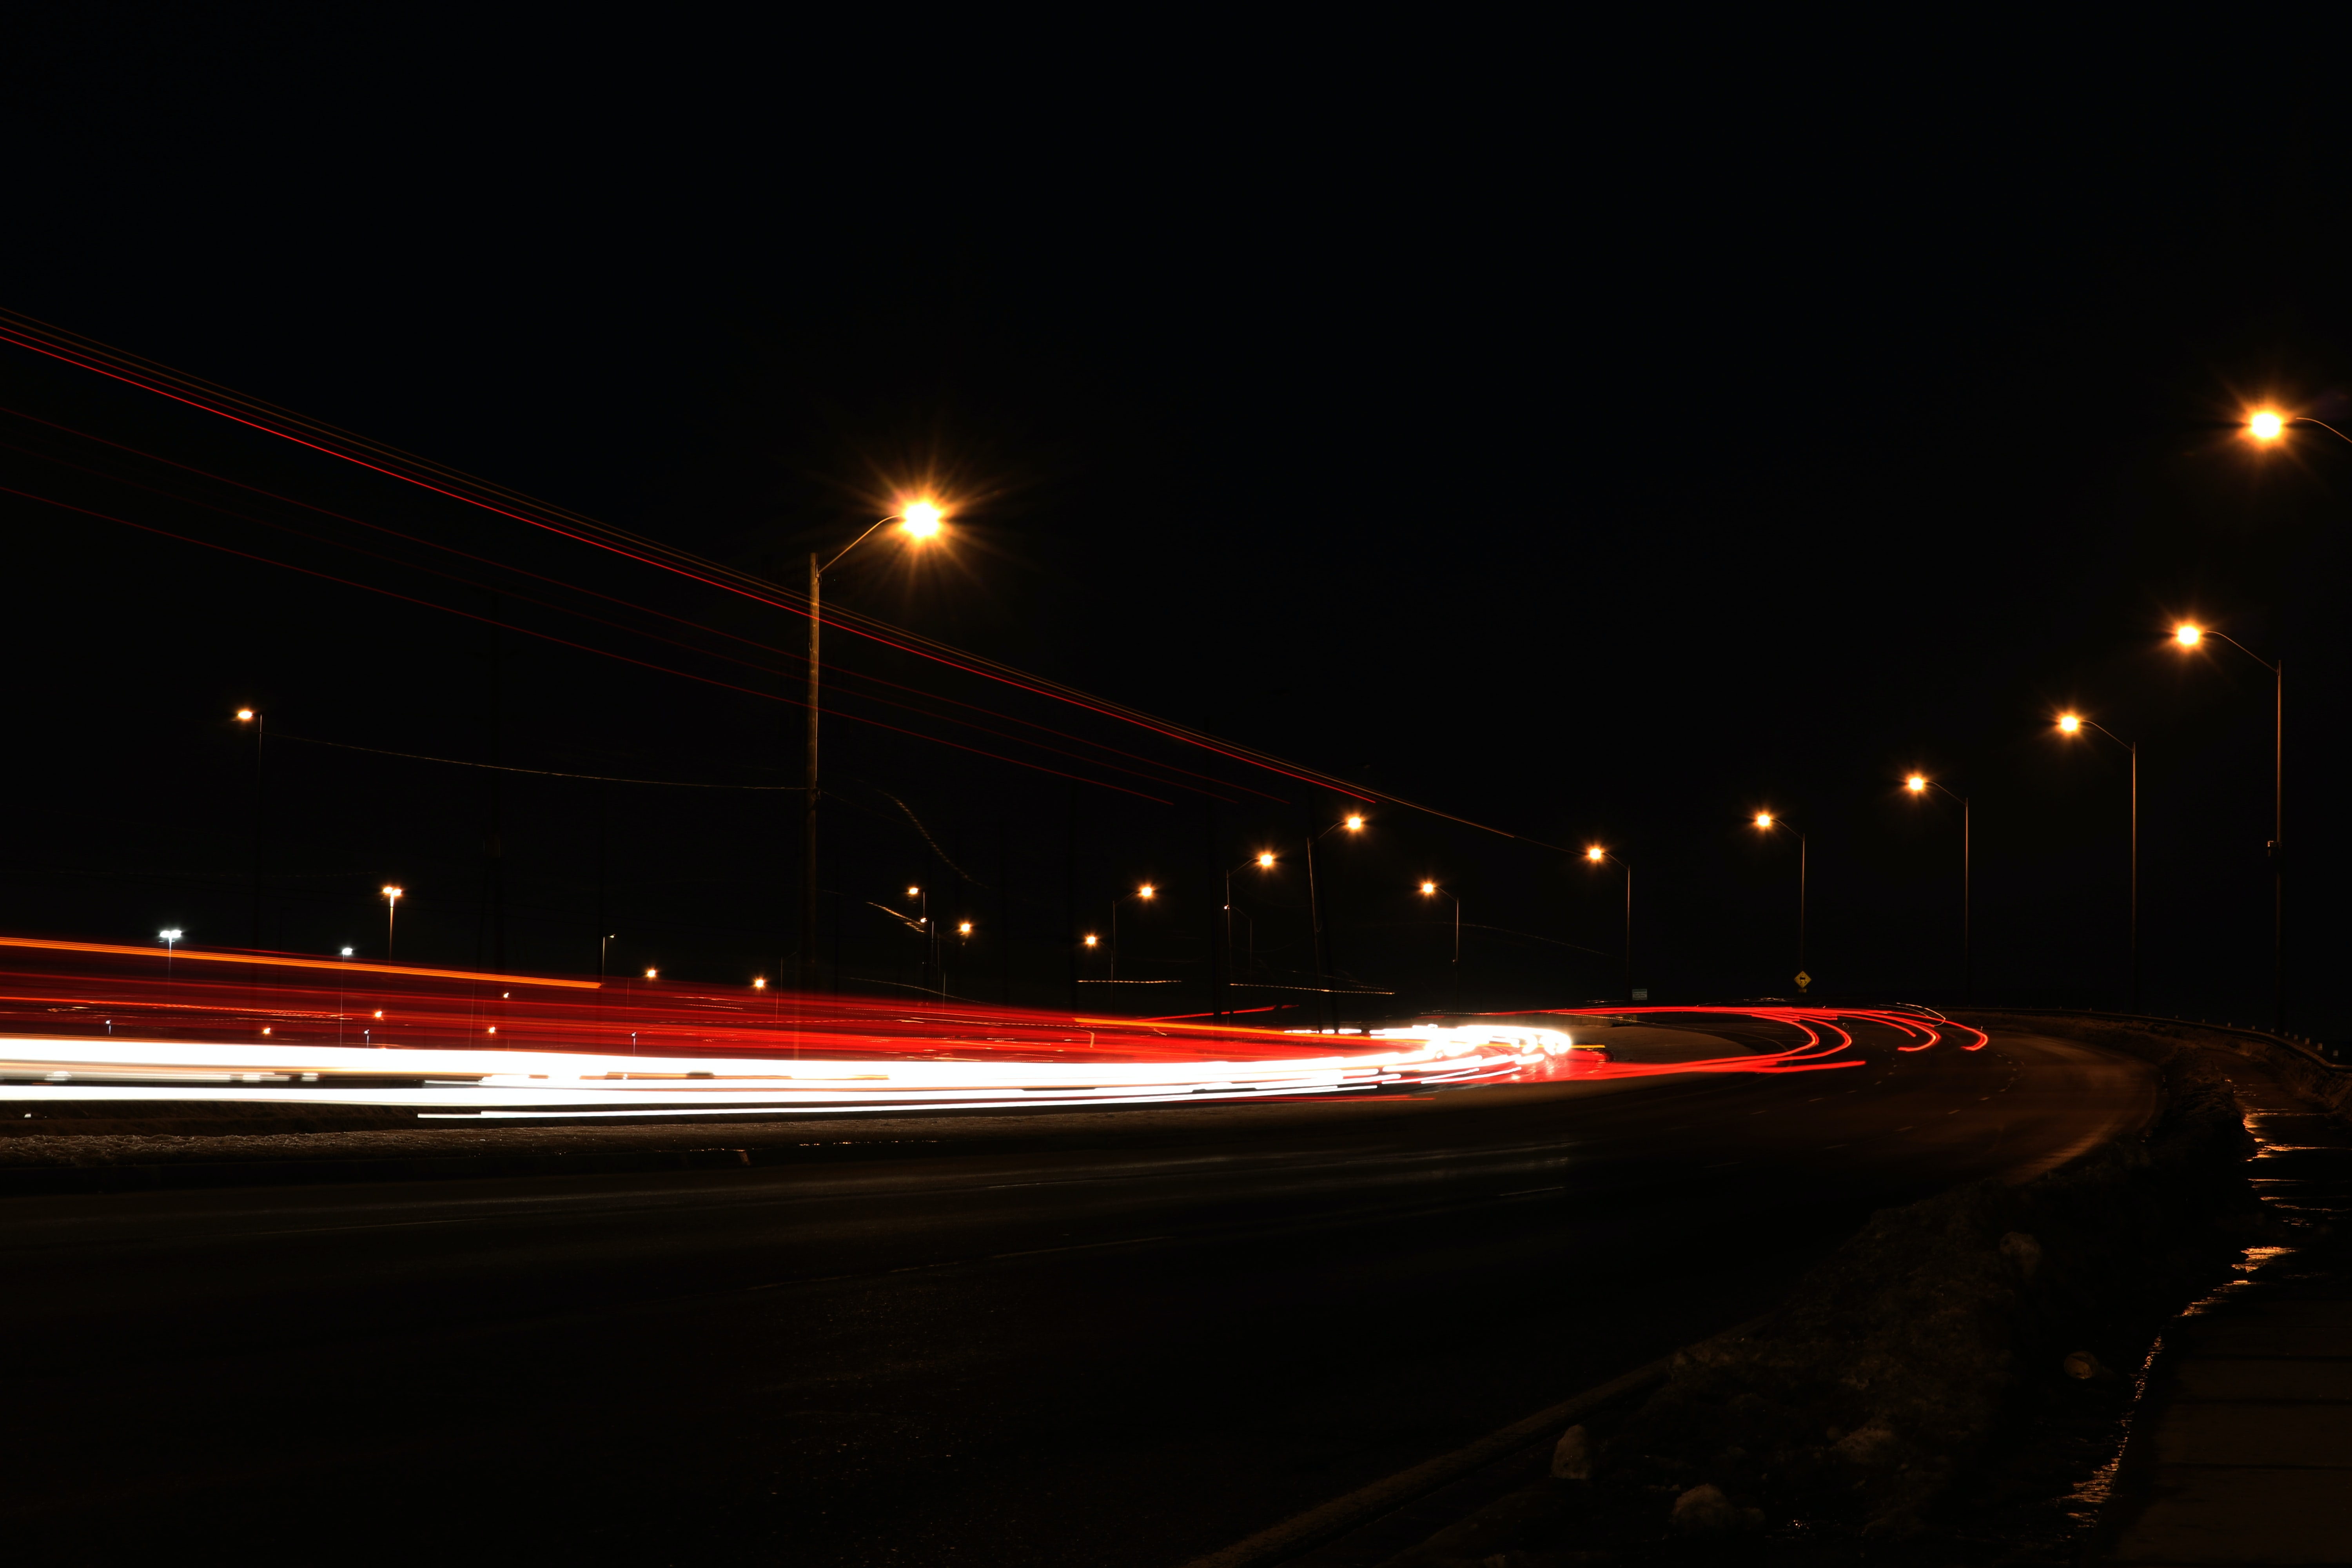 timelapse photography of vehicles during nighttime